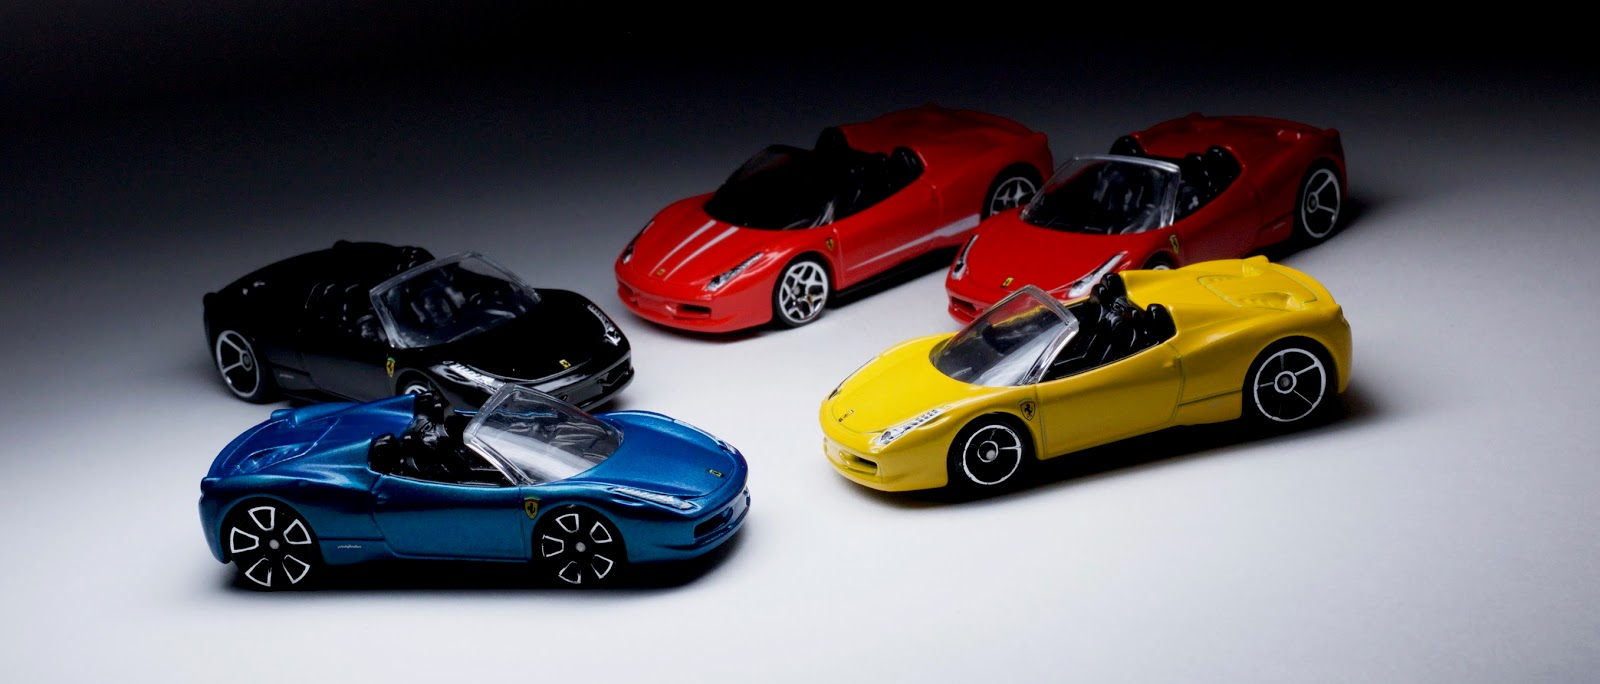 Another Hot Wheels Ferrari We Miss Ferrari Spider The